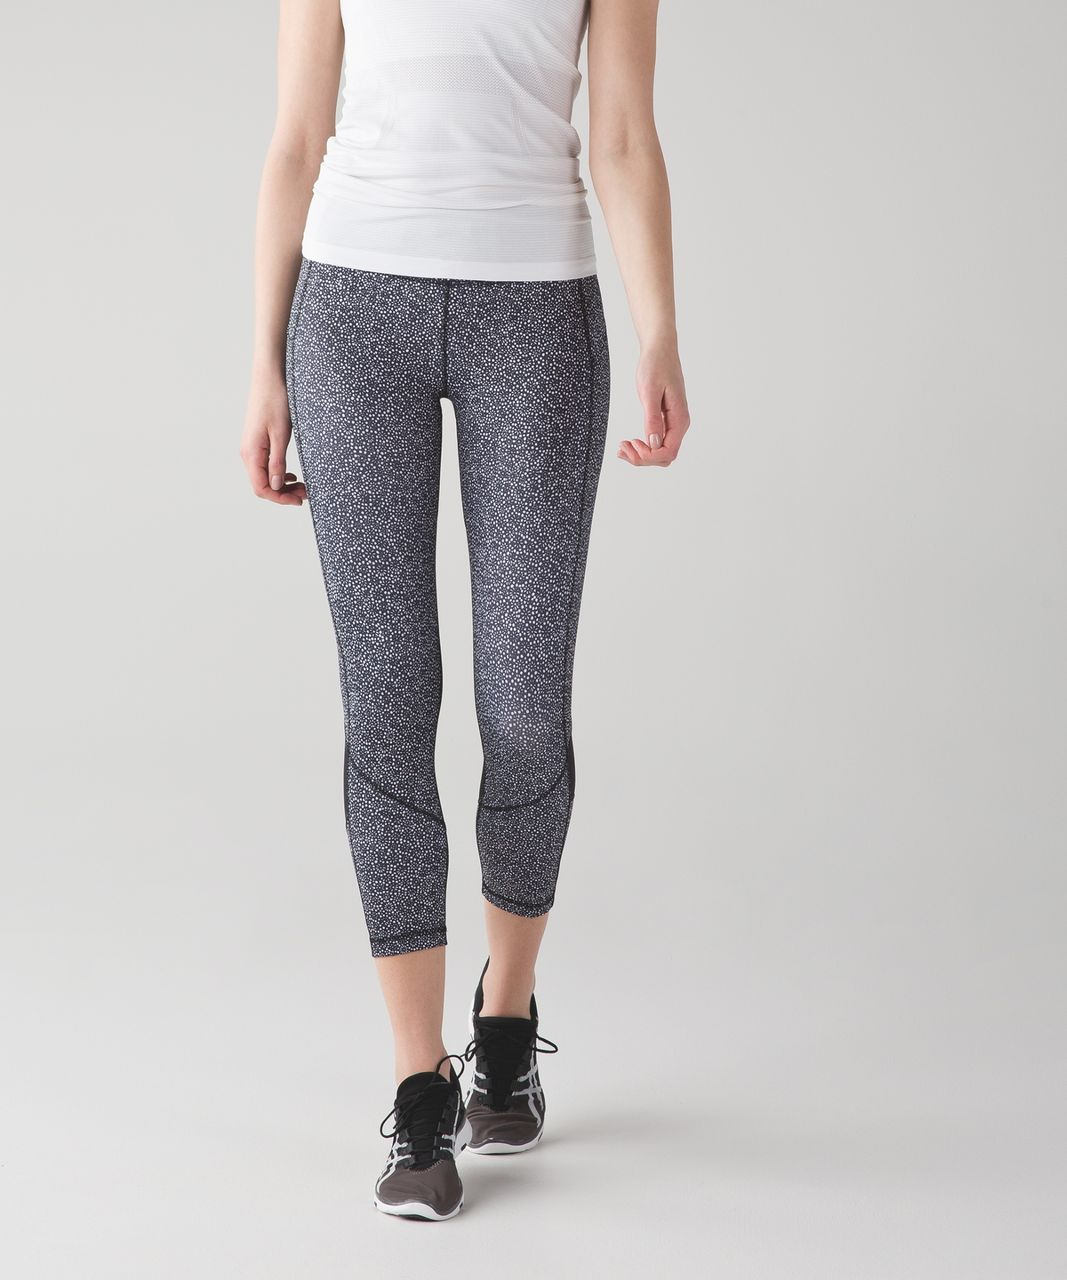 Lululemon Pace Rival Crop - Freckle Flower Black White / Black